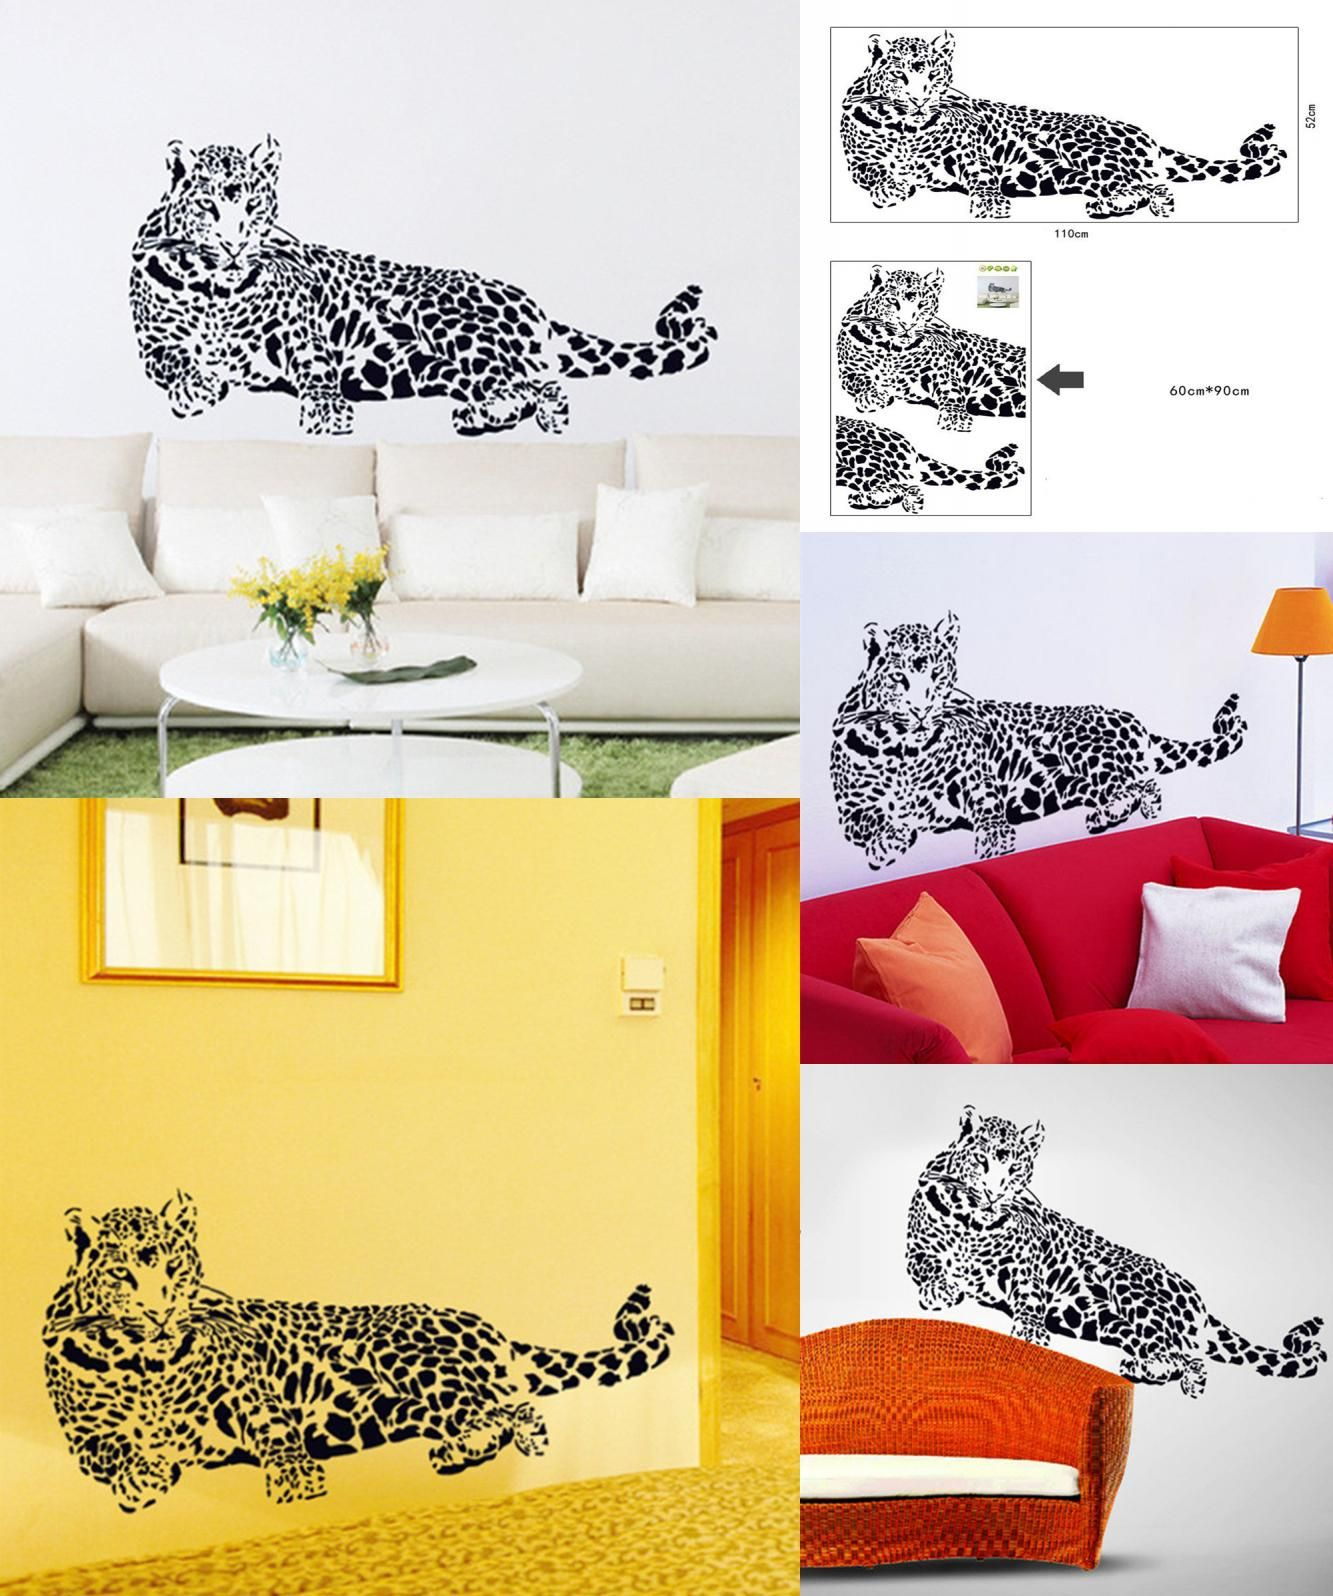 Visit to Buy] Black PVC Wall Stickers Cheetah Leopard 3D Removable ...